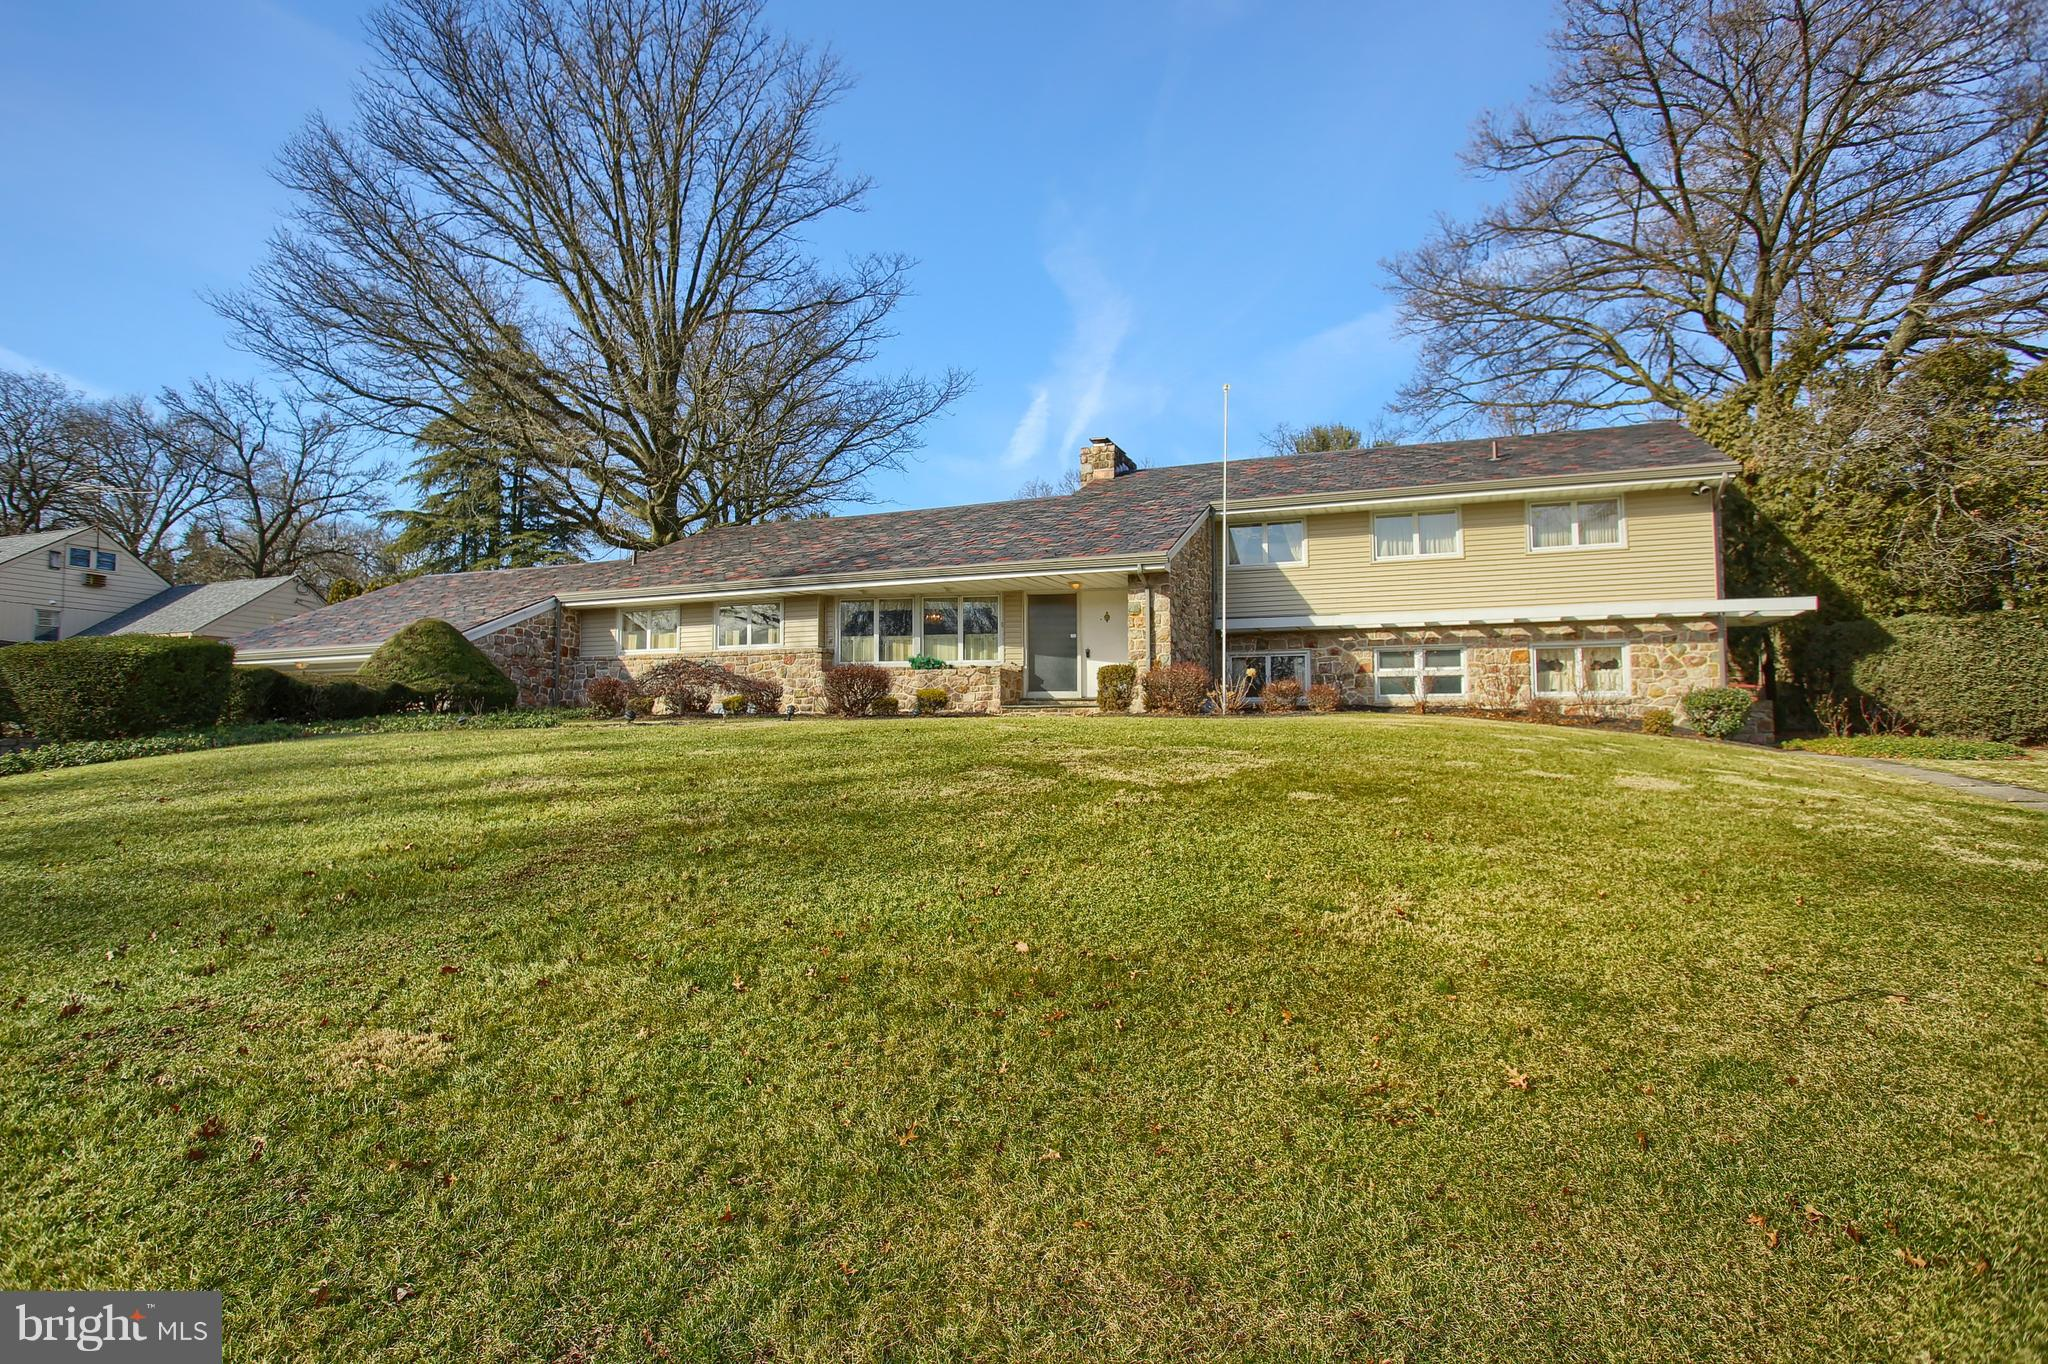 608 MUSEUM ROAD, READING, PA 19611